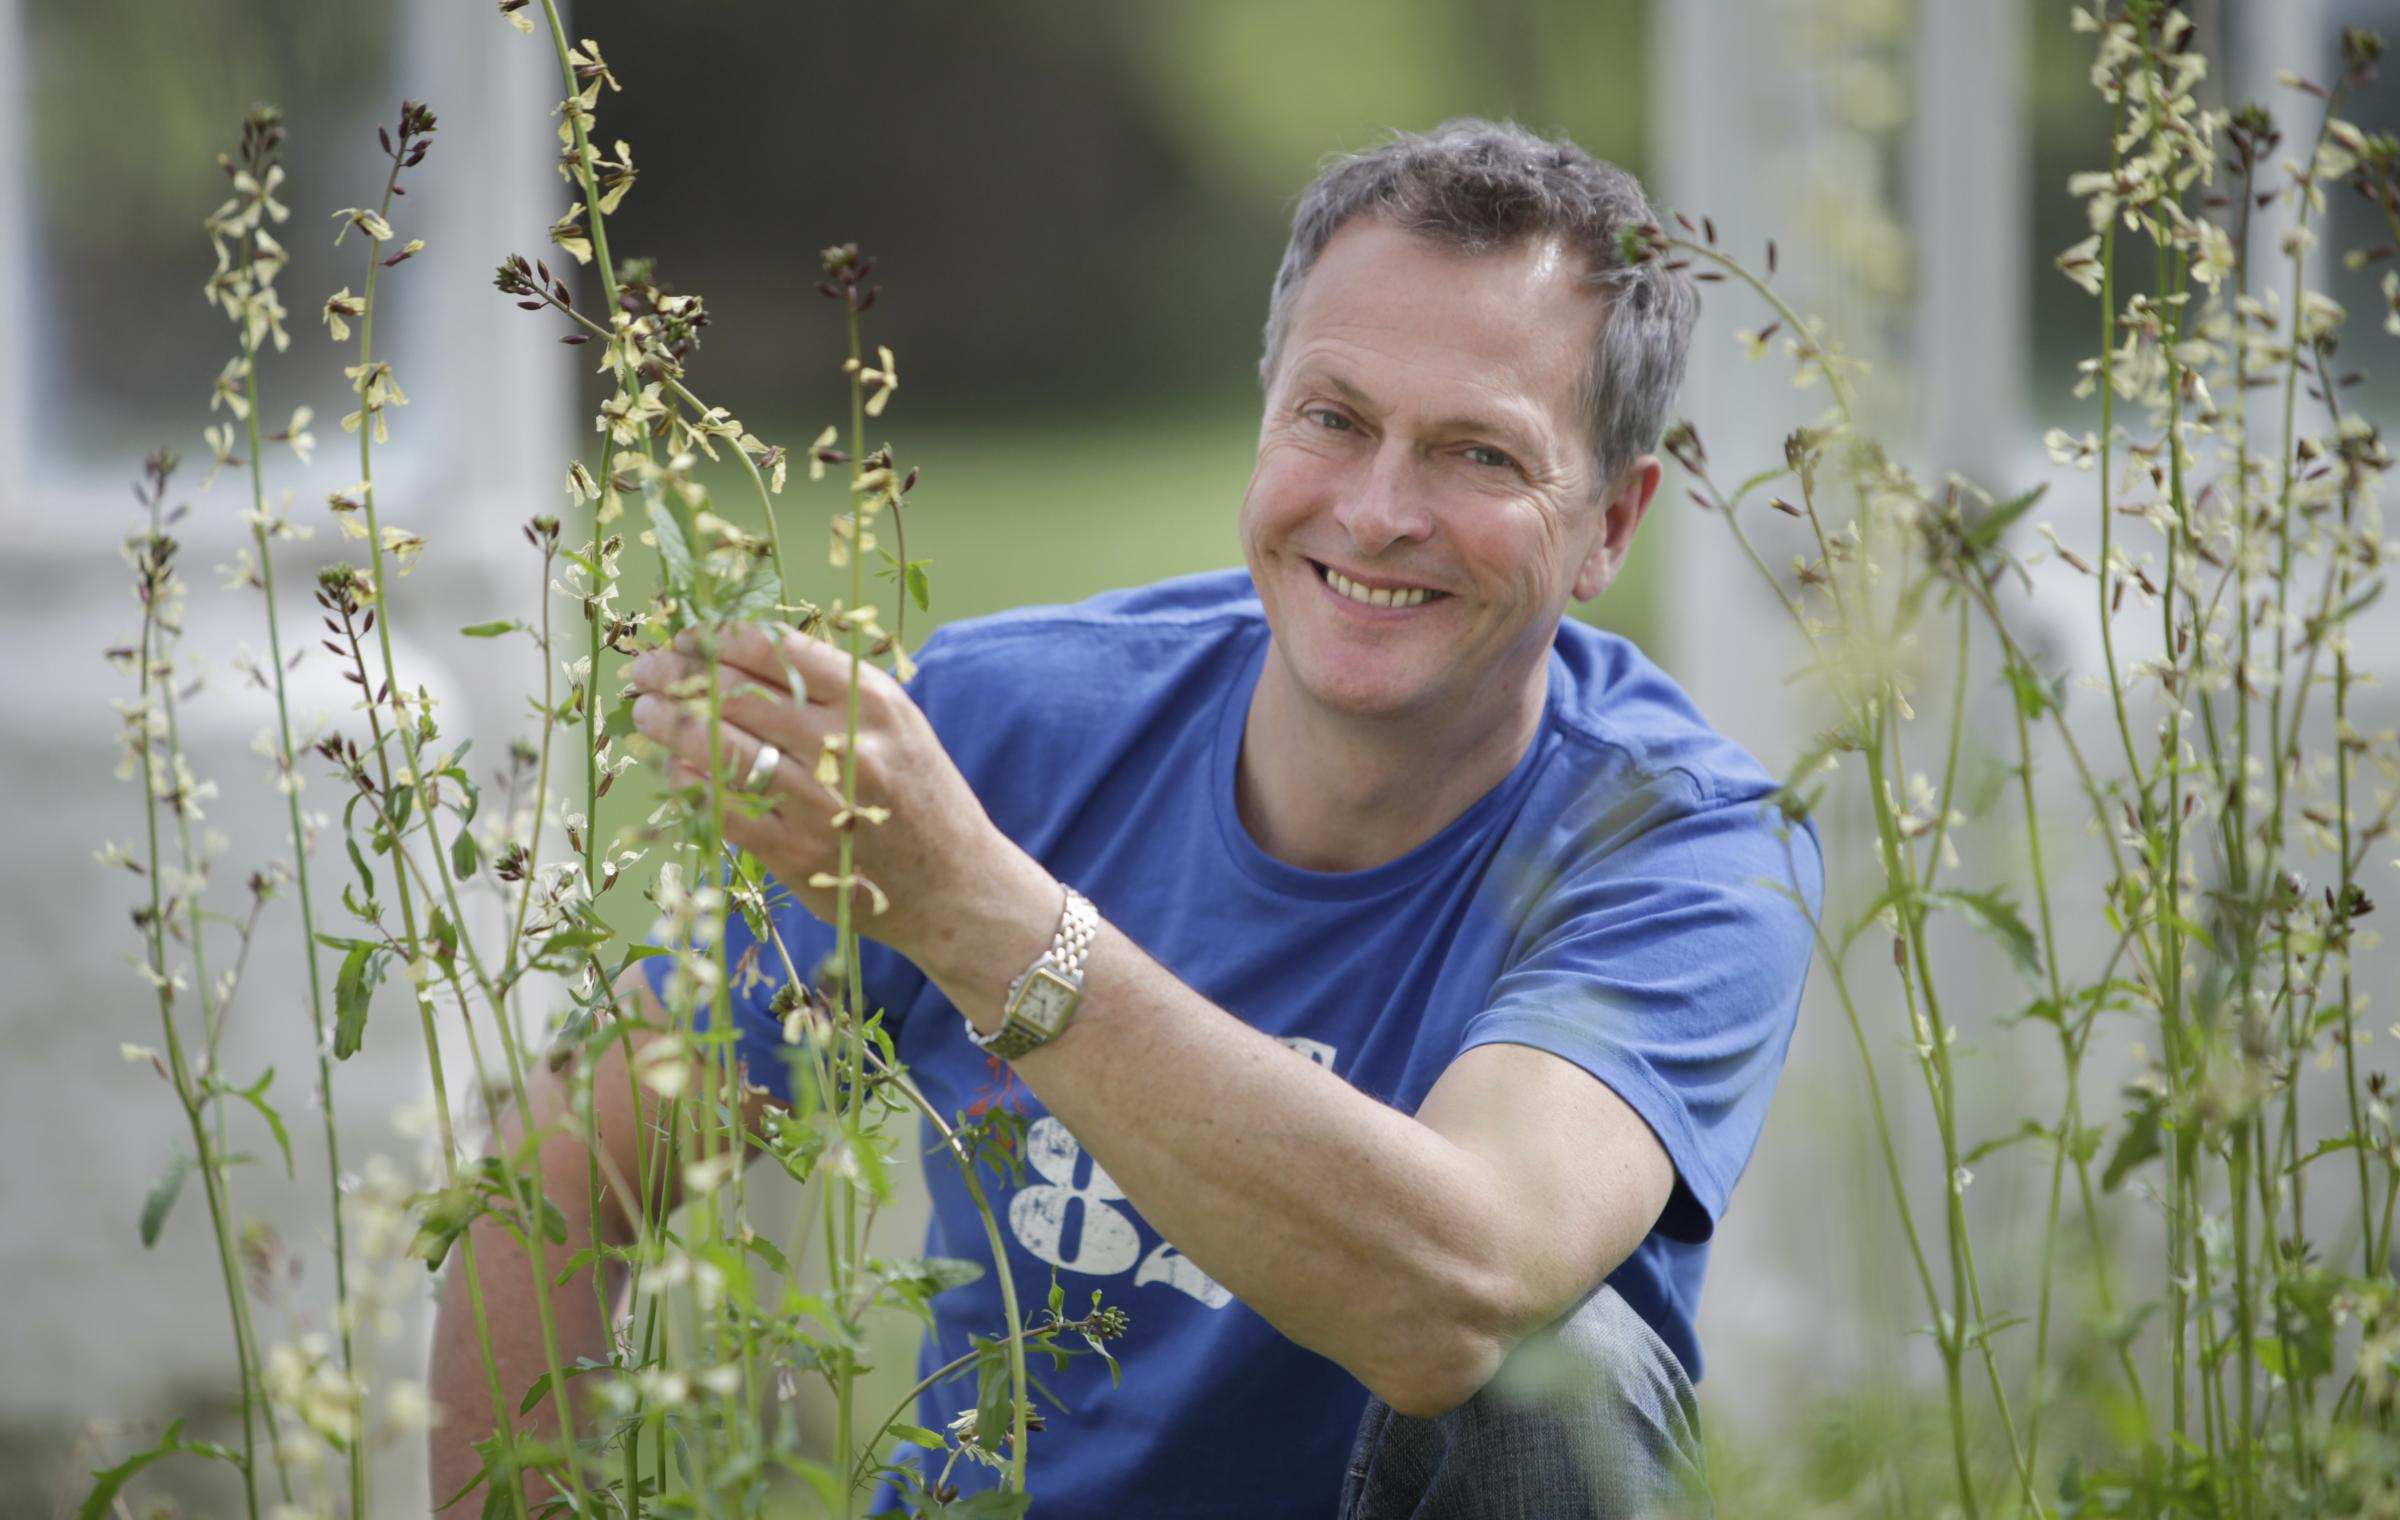 Nick Nairn led the award's judging panel in August